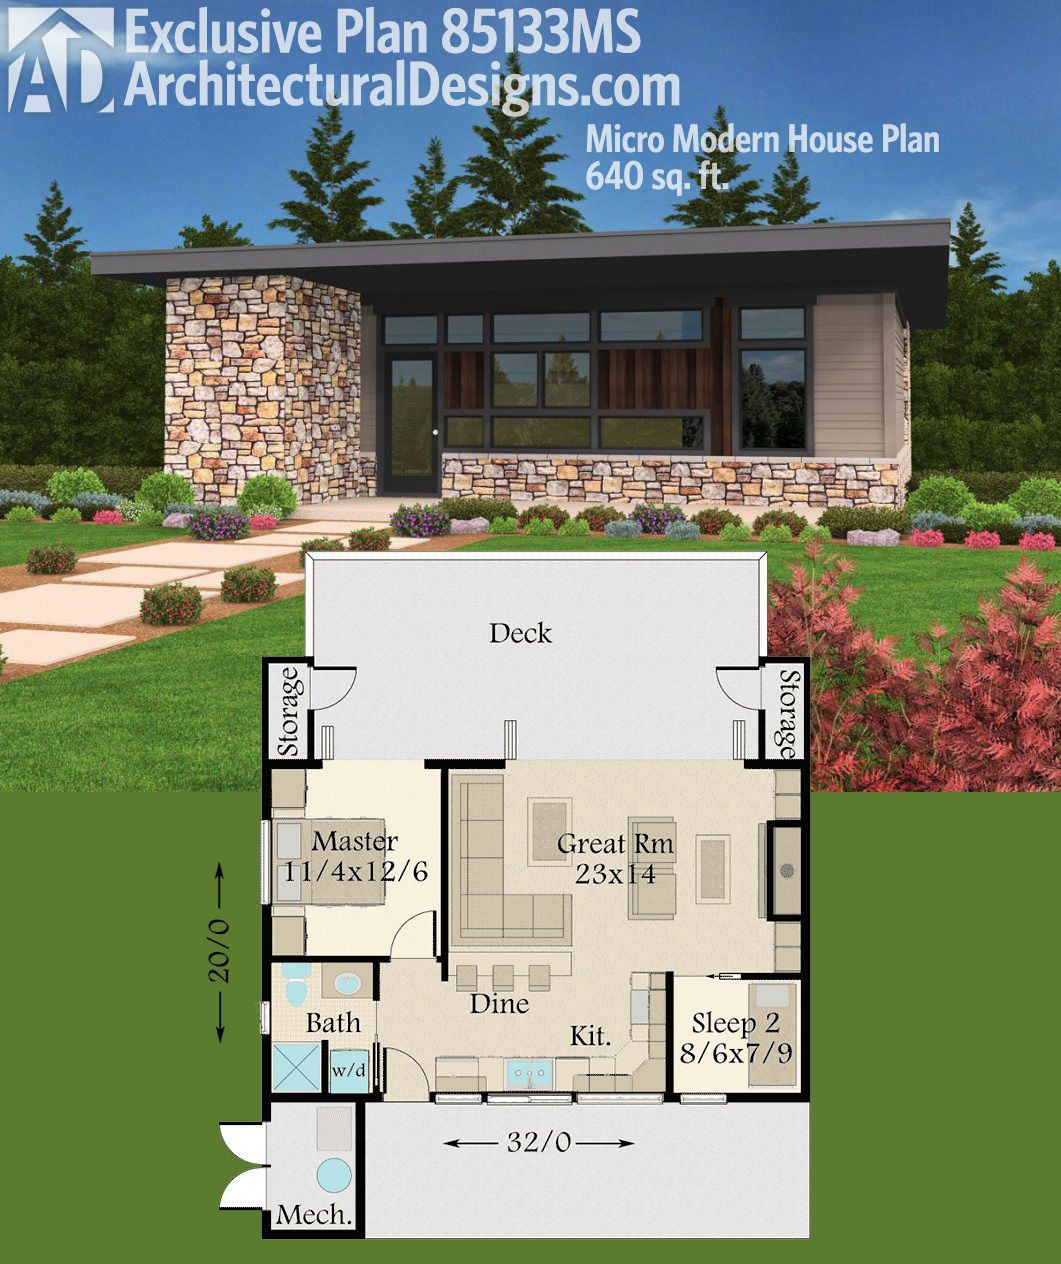 Plan 85133ms Exclusive Tiny Modern House Plan With